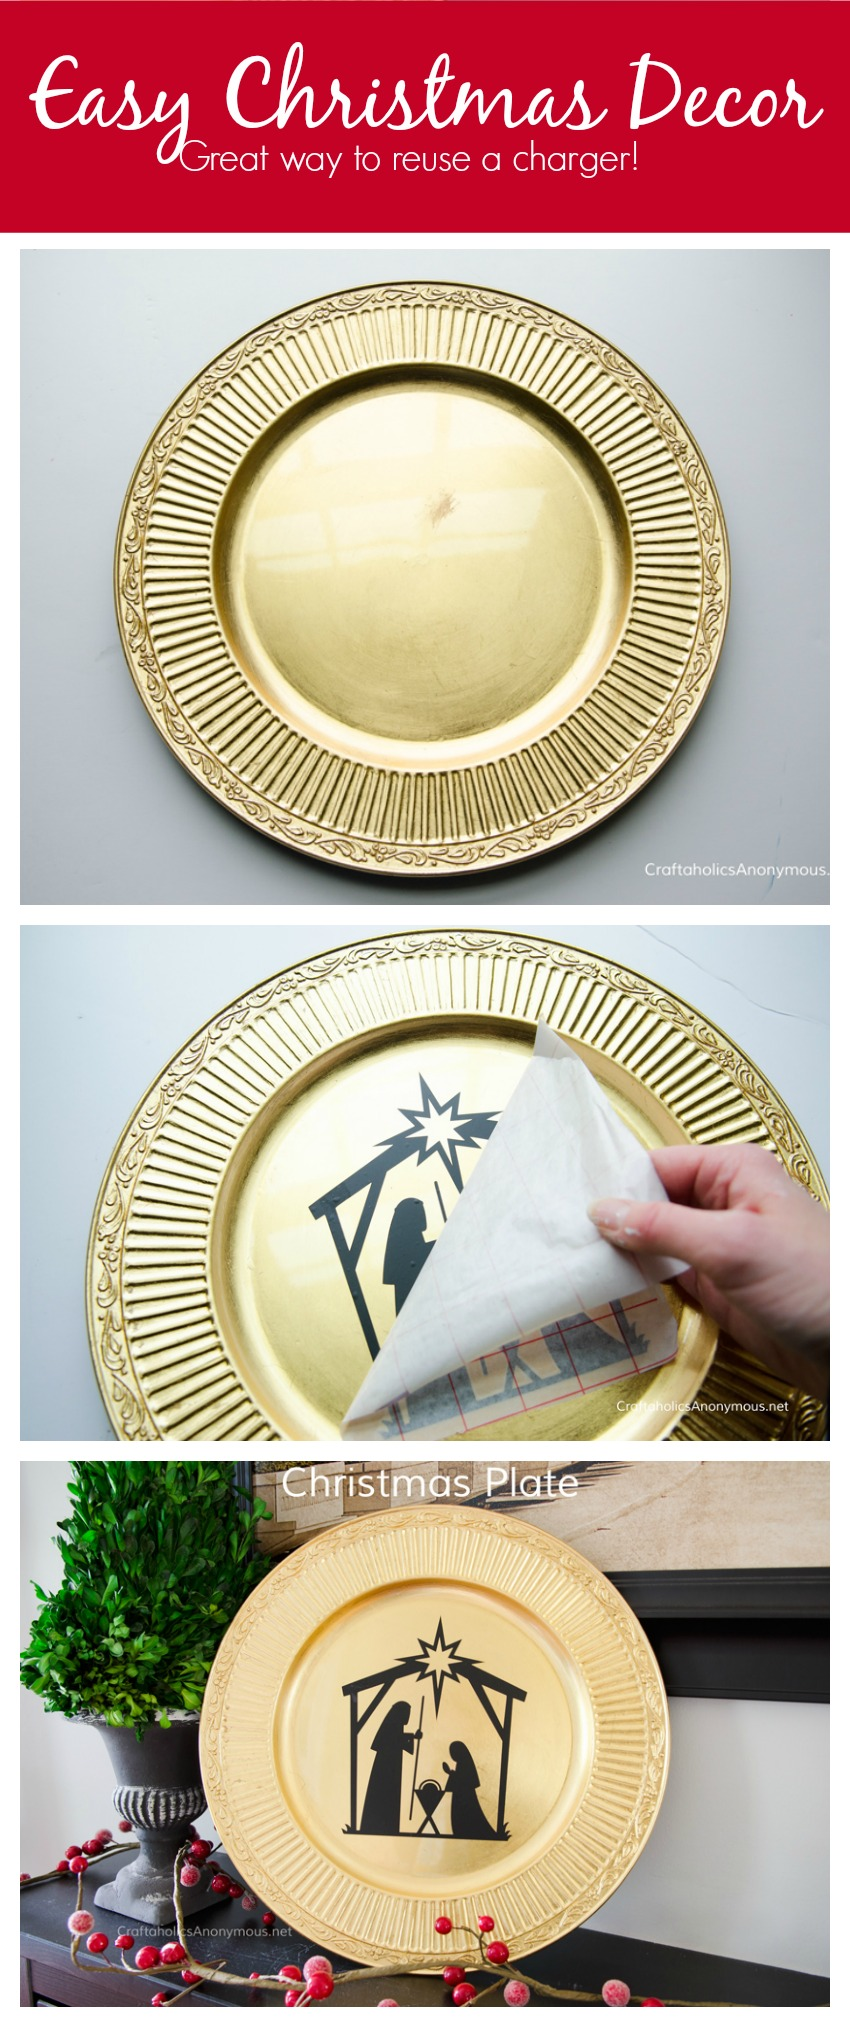 Christmas Charger plate decor idea. Would make a great handmade Christmas gift too!